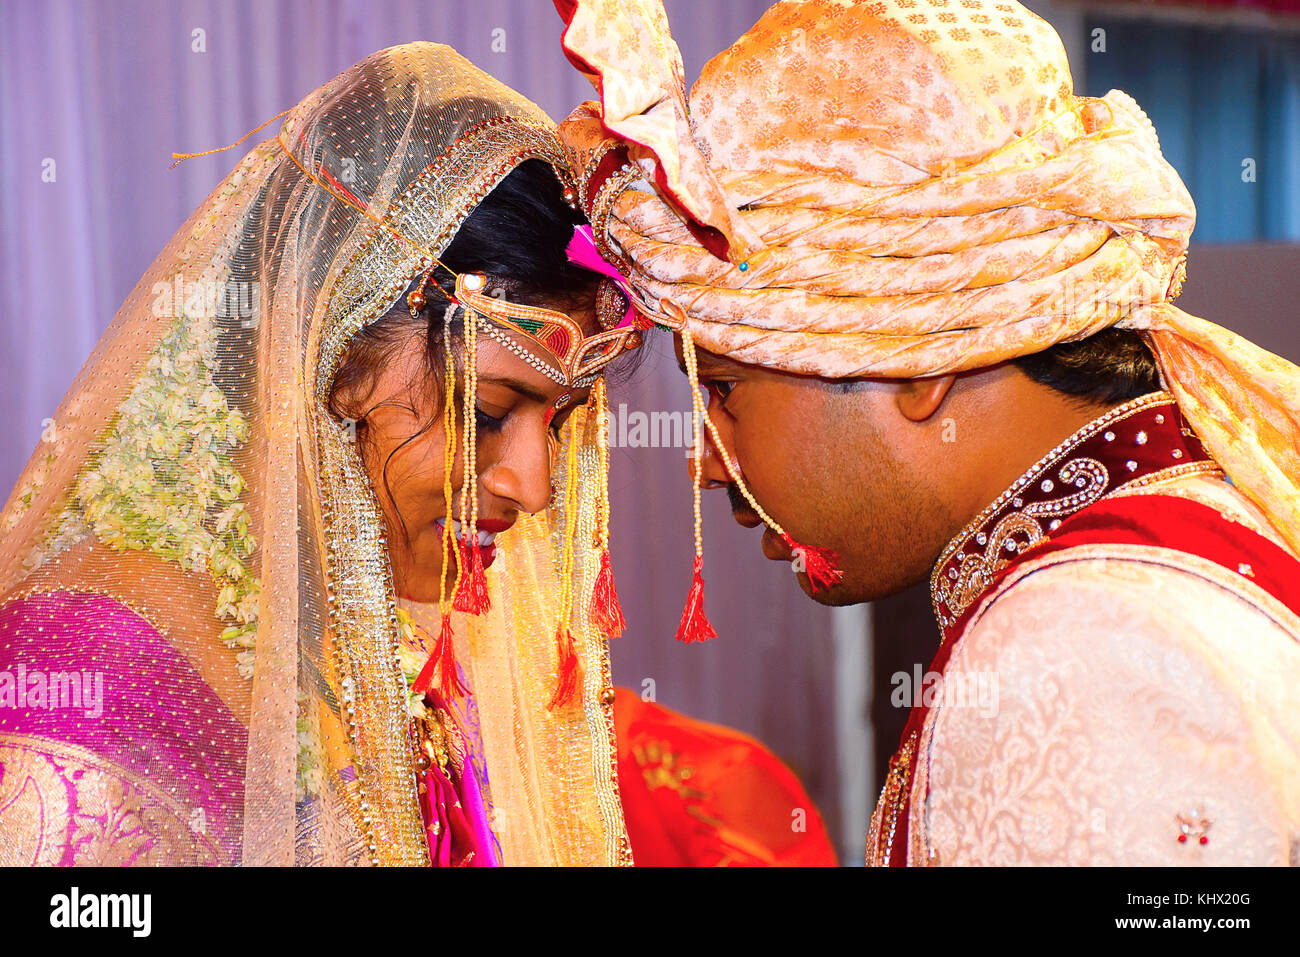 Indian Bride And Groom Hands Stock Photos & Indian Bride ...